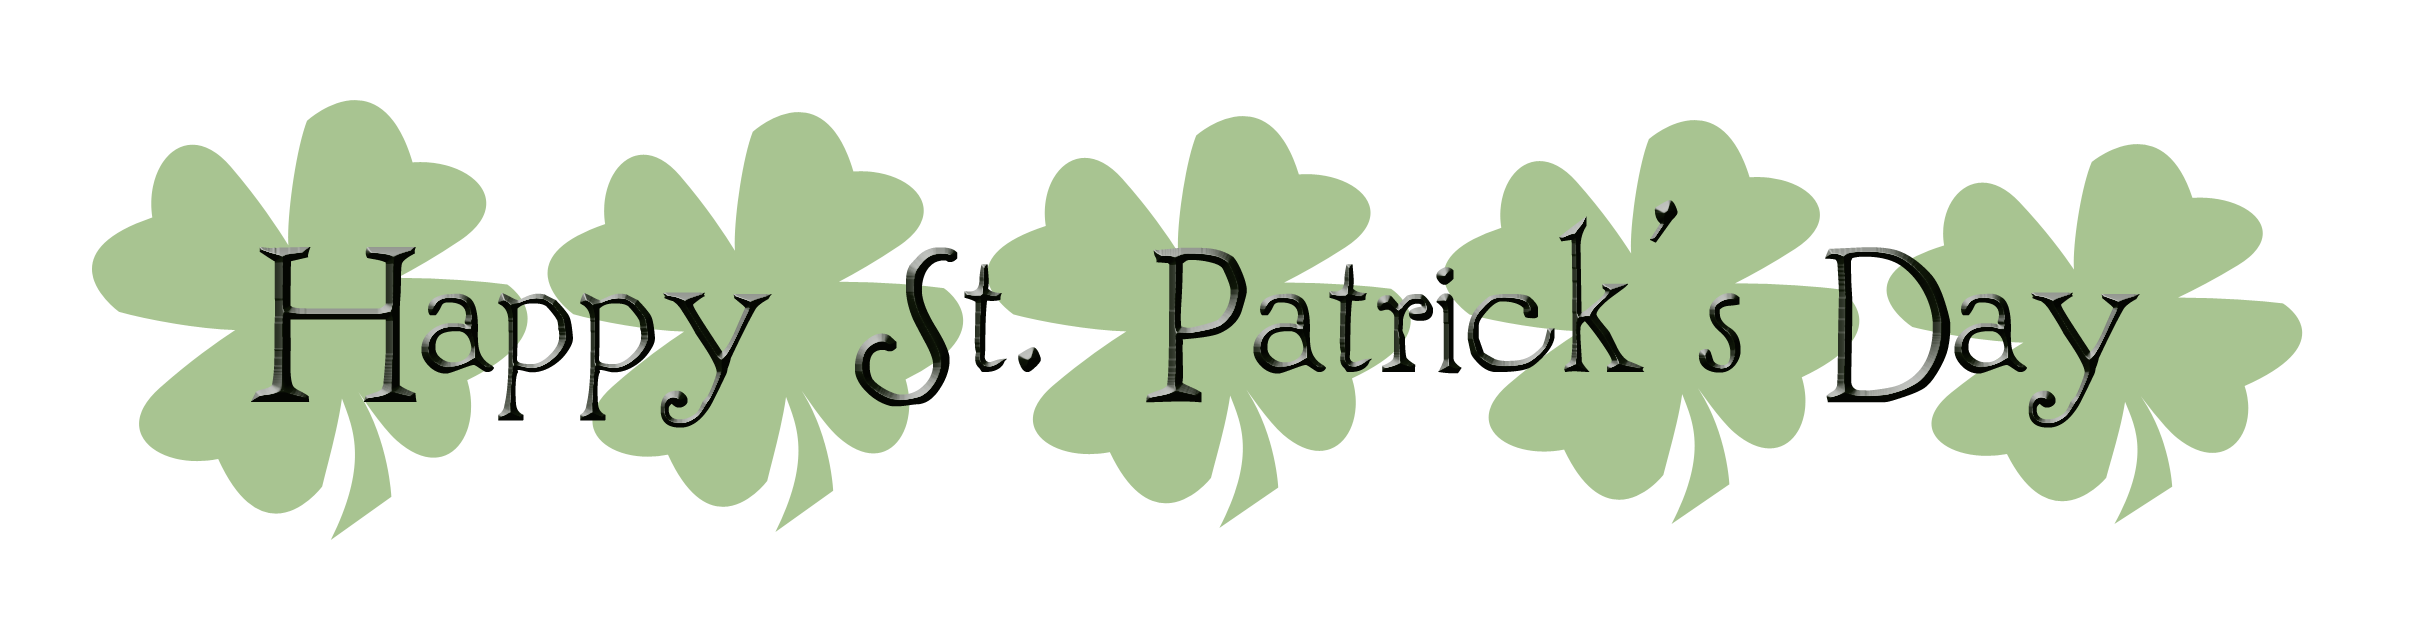 This  Happy St  Patrick S Day  Graphic Is Available In Jpeg